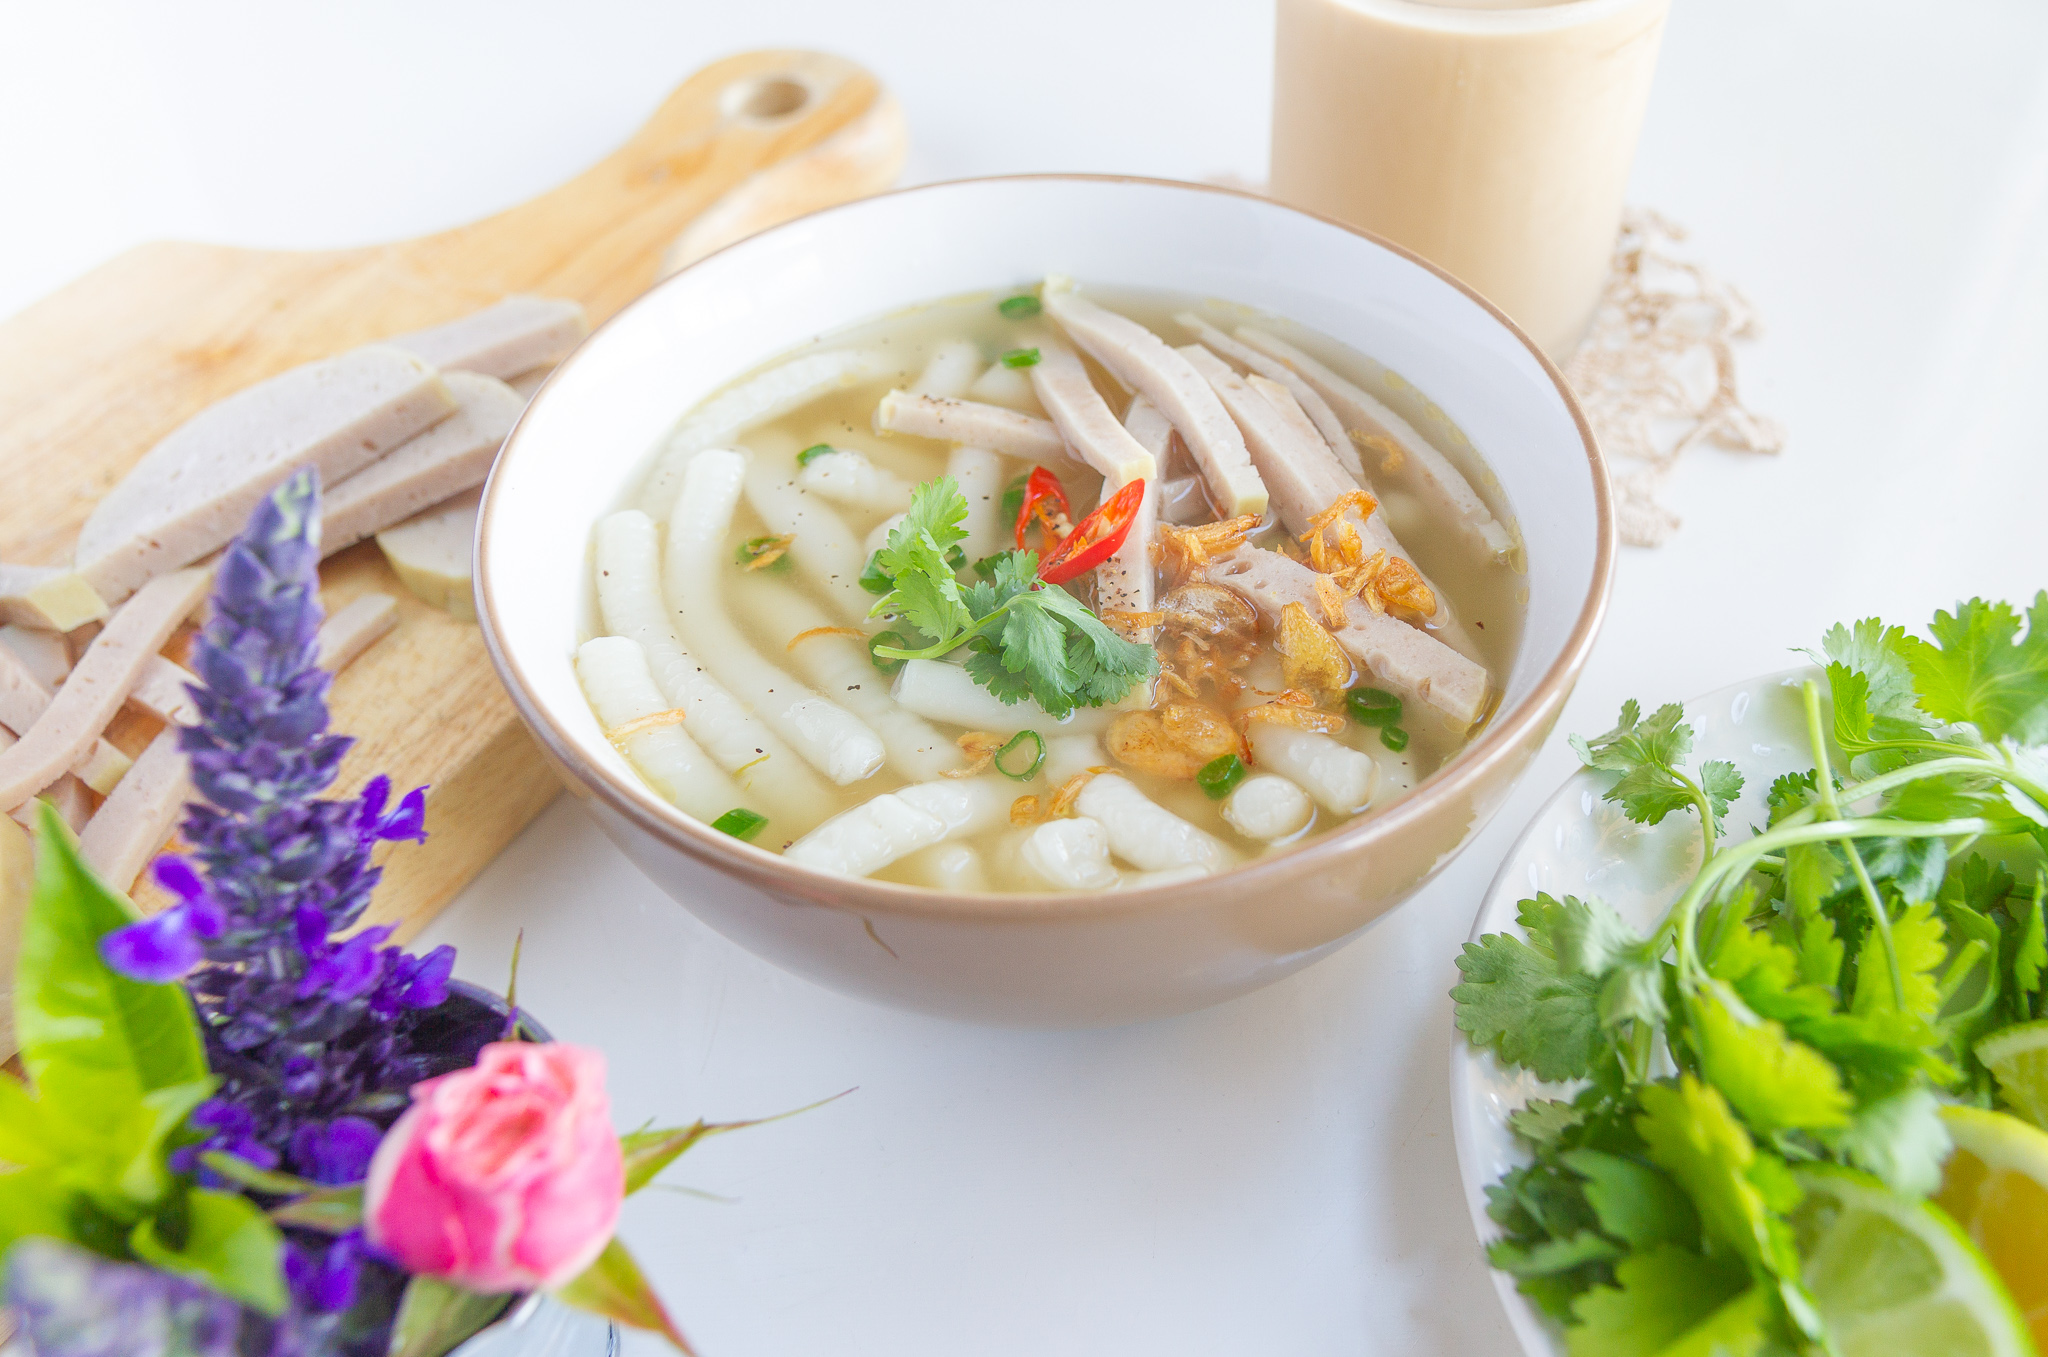 Vietnamese Banh Canh Noodles from Scratch (Cach Lam Soi Banh Canh)